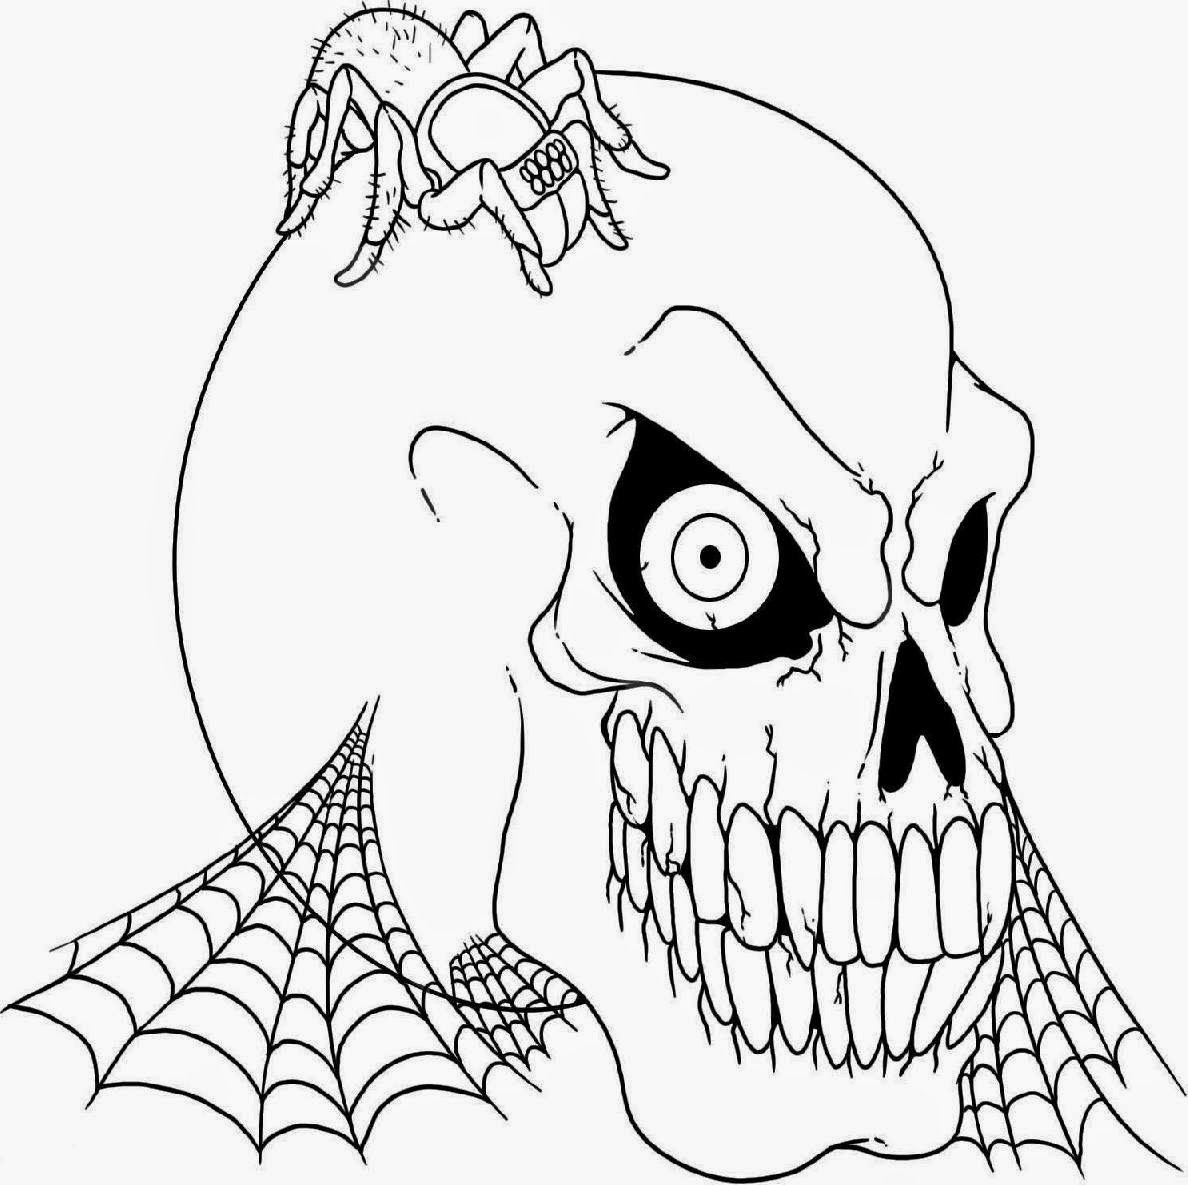 coloring pages halloween scary halloween coloring pages june 2012 halloween scary pages coloring